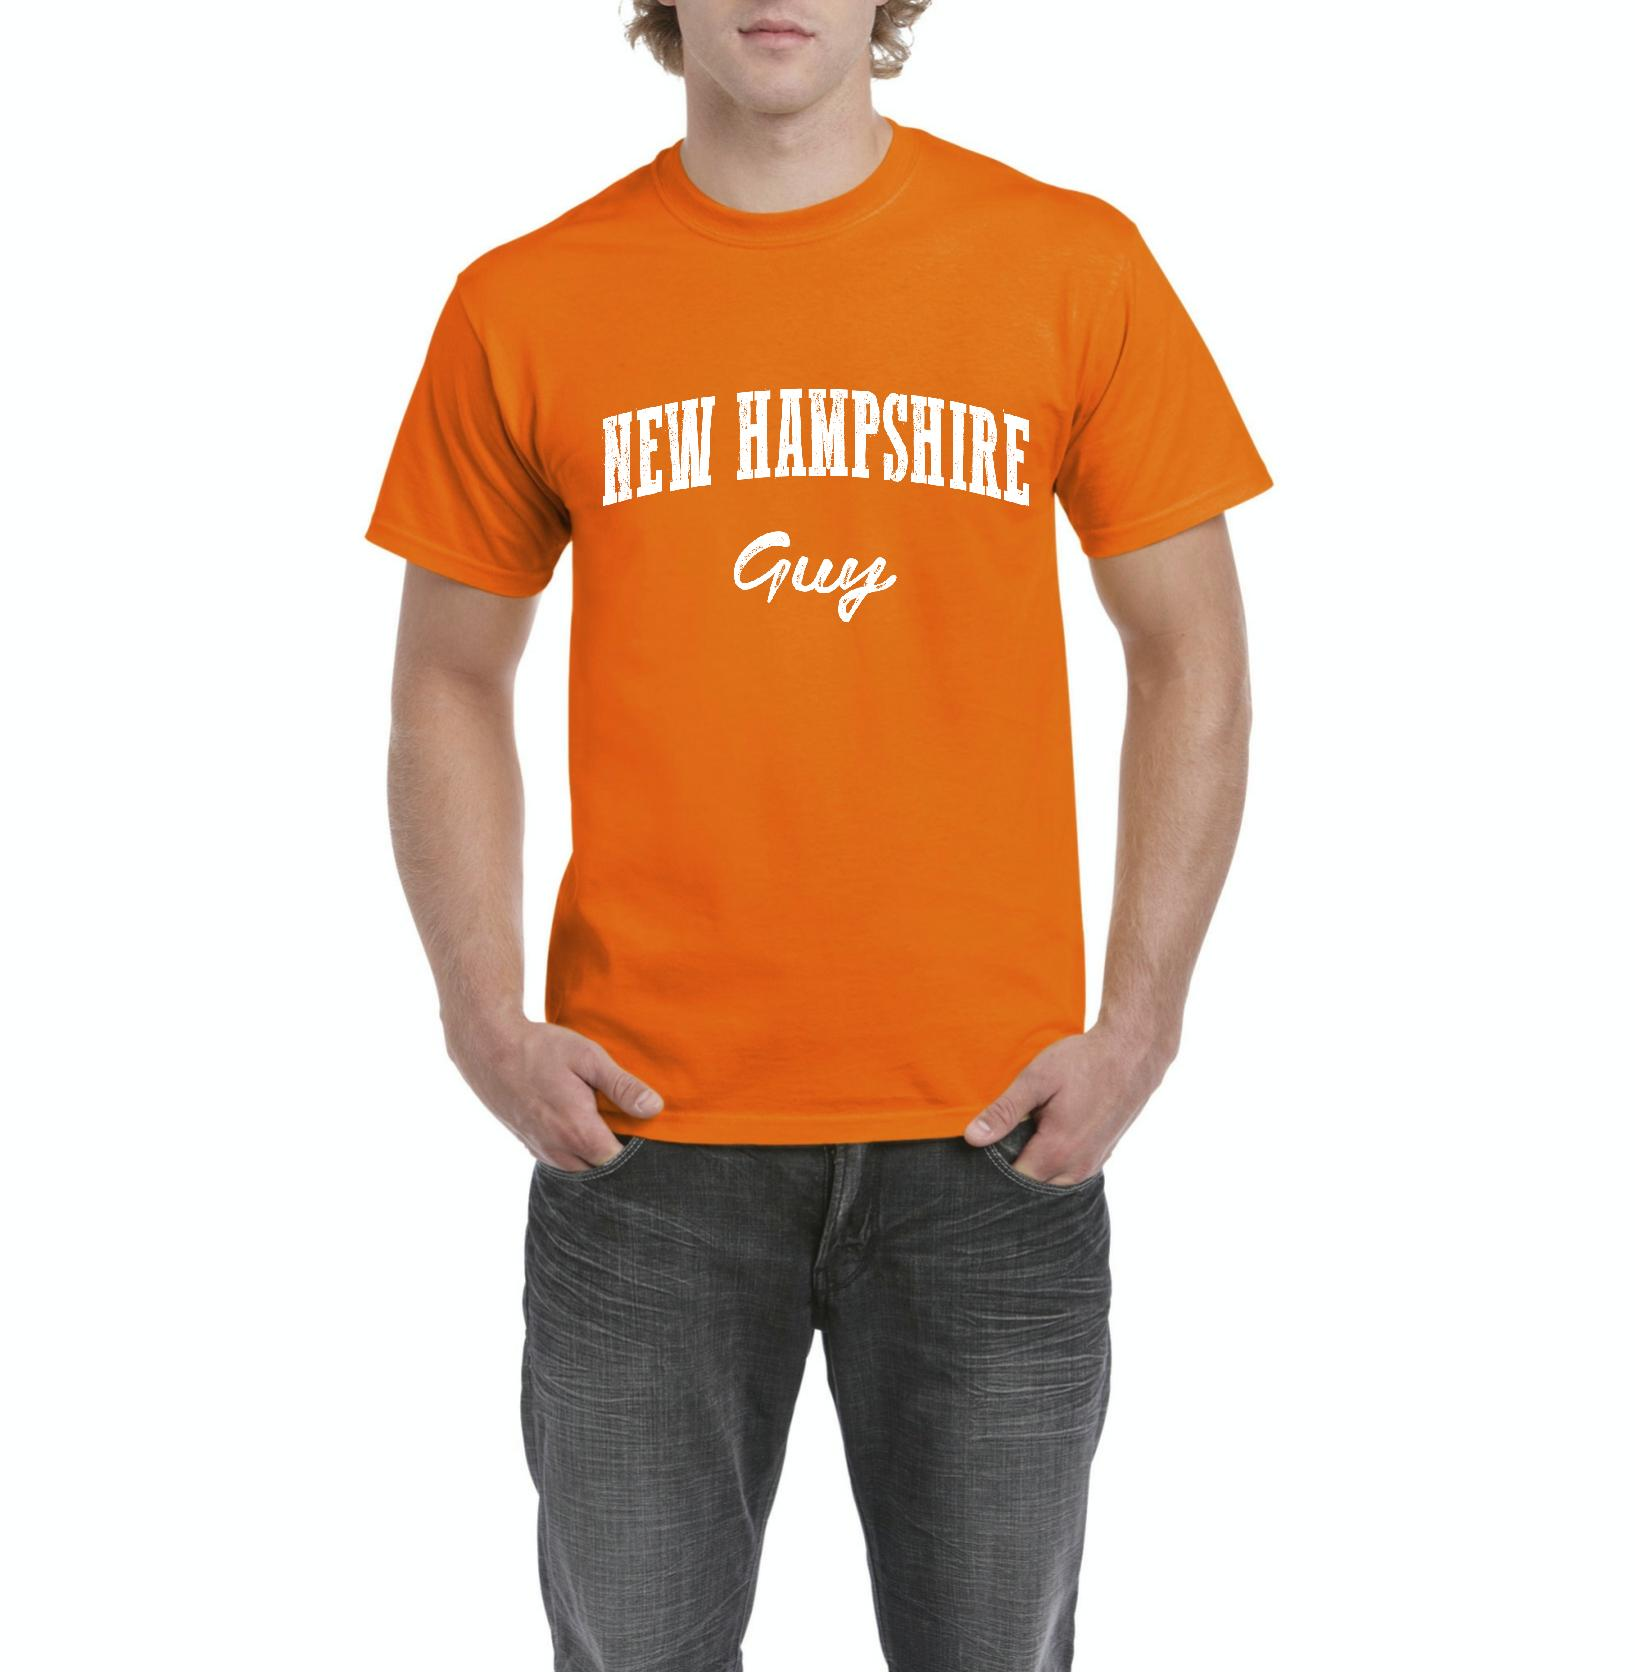 J_H_I NH Guy Flag Manchaster Concord Map Wildcats Home University of New Hampshire Mens Shirts